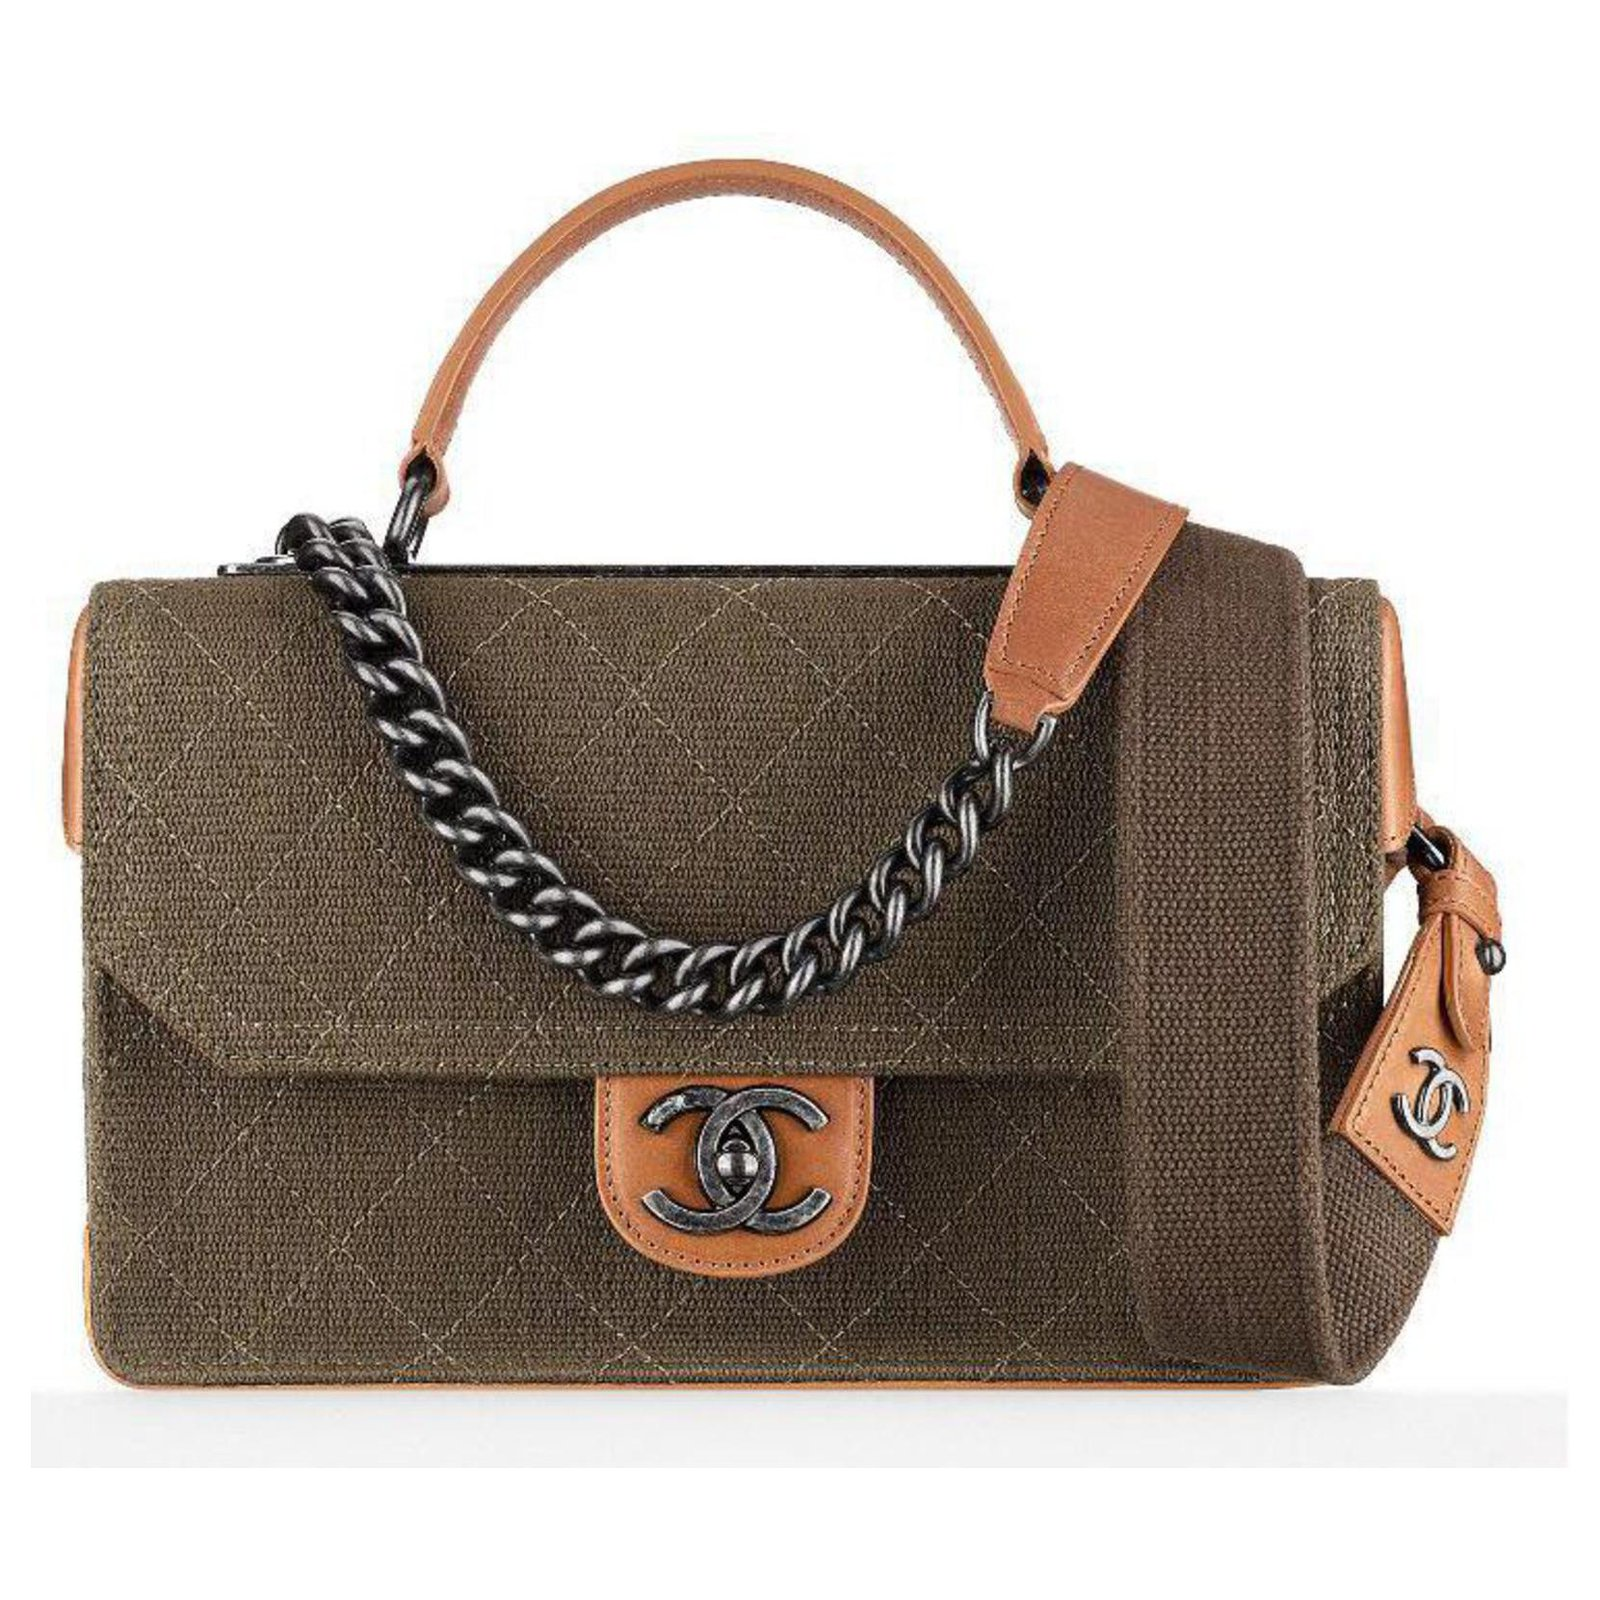 50% price hot-selling professional purchase cheap CHANEL BAG HANDBAG lined STRAP CHAIN AND FABRIC